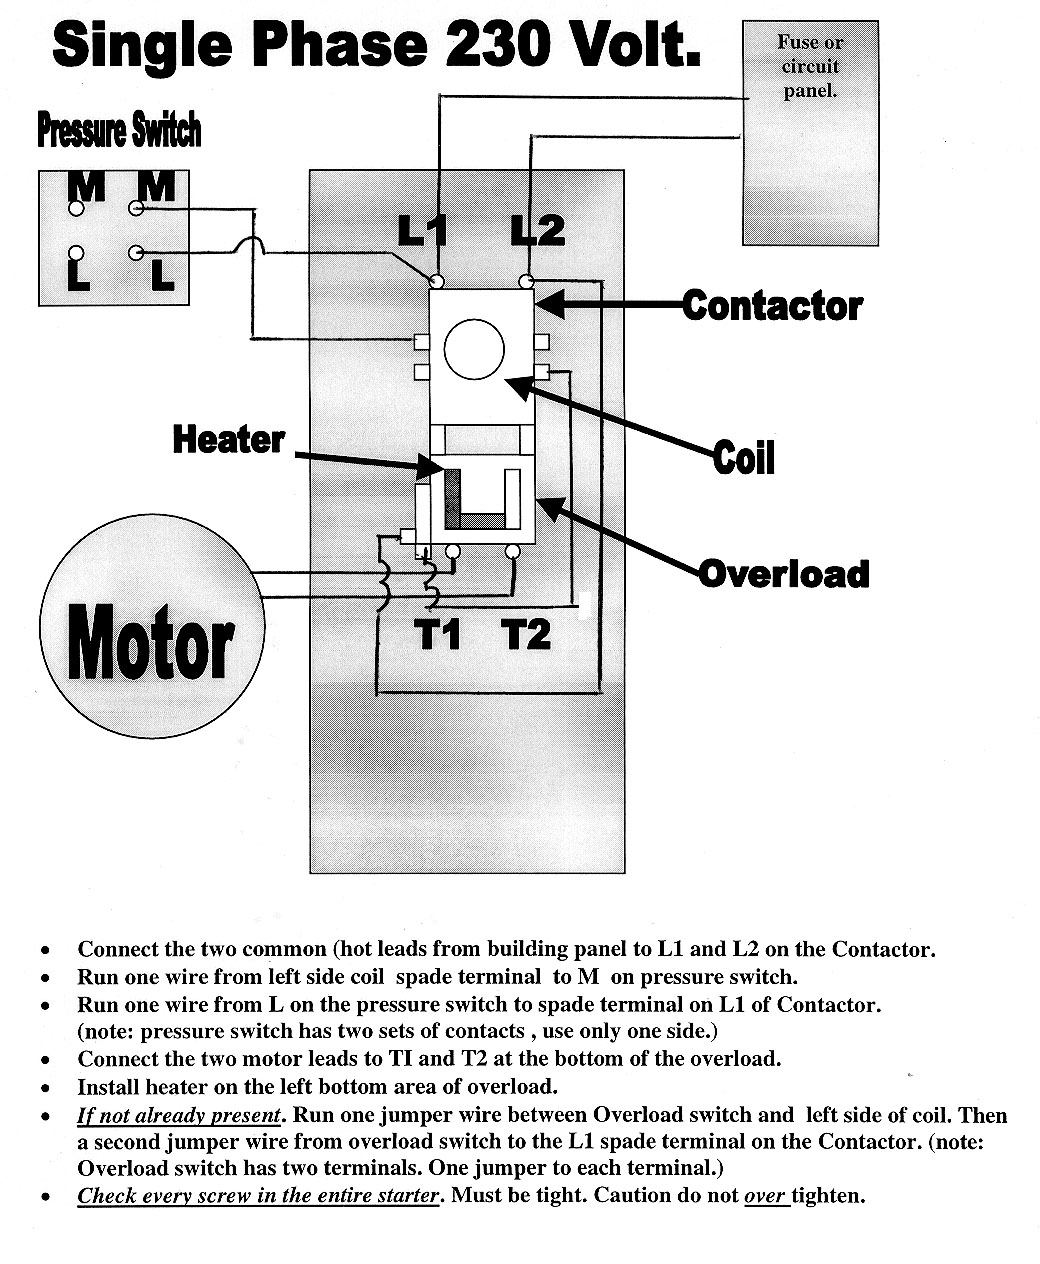 230v 3 Phase Wiring Diagram - Wiring Diagram All Data L L Wiring Diagram on internet of things diagrams, motor diagrams, electrical diagrams, gmc fuse box diagrams, friendship bracelet diagrams, engine diagrams, led circuit diagrams, hvac diagrams, battery diagrams, troubleshooting diagrams, honda motorcycle repair diagrams, electronic circuit diagrams, switch diagrams, pinout diagrams, lighting diagrams, series and parallel circuits diagrams, sincgars radio configurations diagrams, transformer diagrams, smart car diagrams, snatch block diagrams,